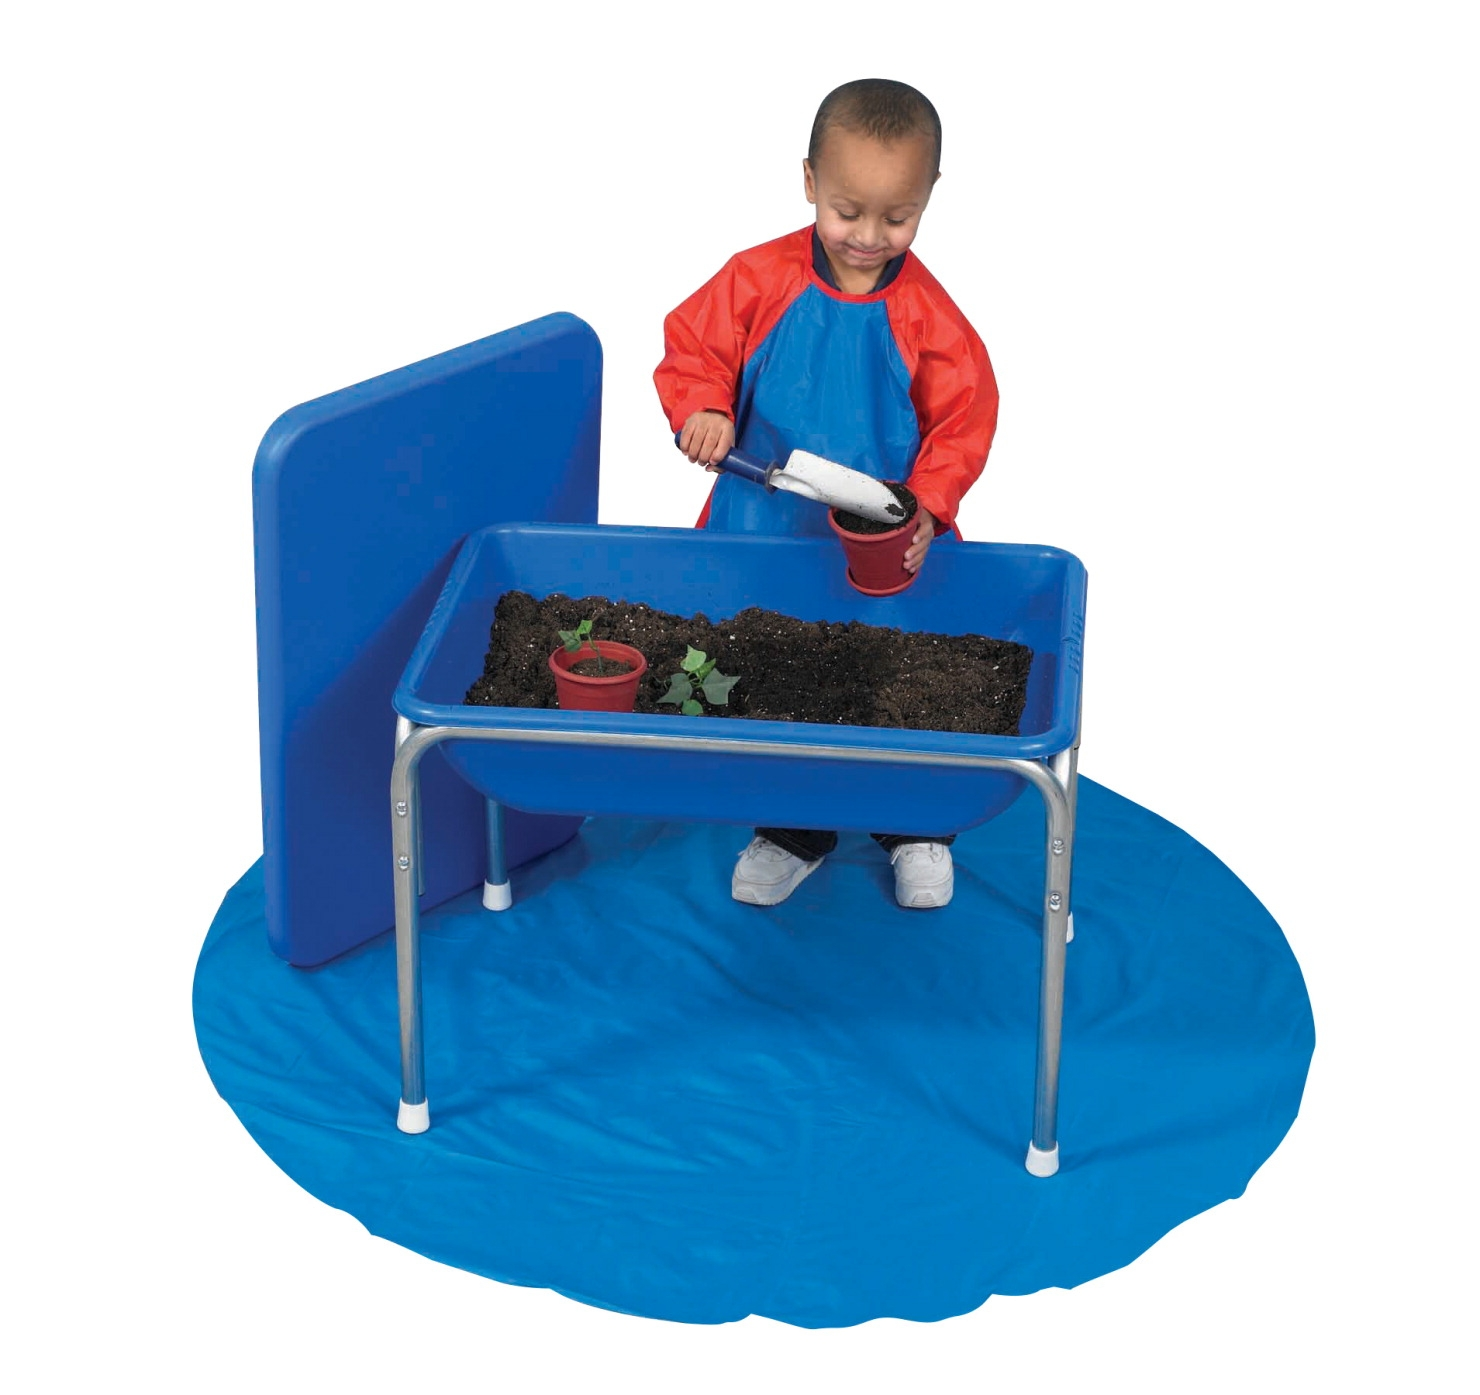 Children's Factory Small Sensory Table And Lid Set; 28-1/2 X 20-1/2 X 18 Inches; Chrome Steel Frame - 1427601 - Special Needs Sensory Processing Multi Sensory 1427601